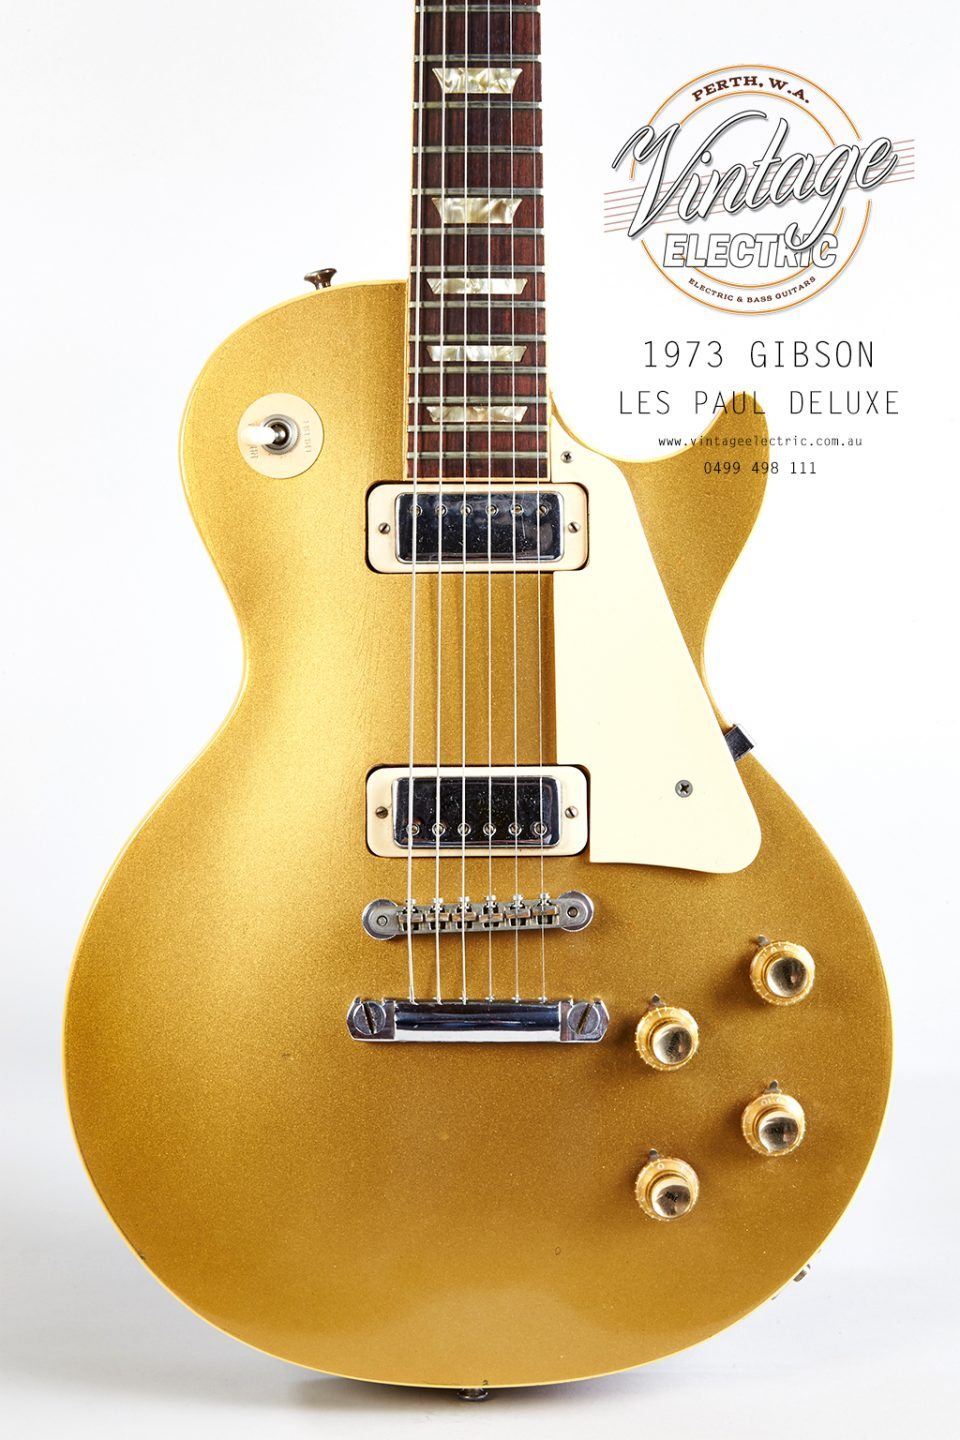 1973 Gibson Les Paul Deluxe Goldtop Body